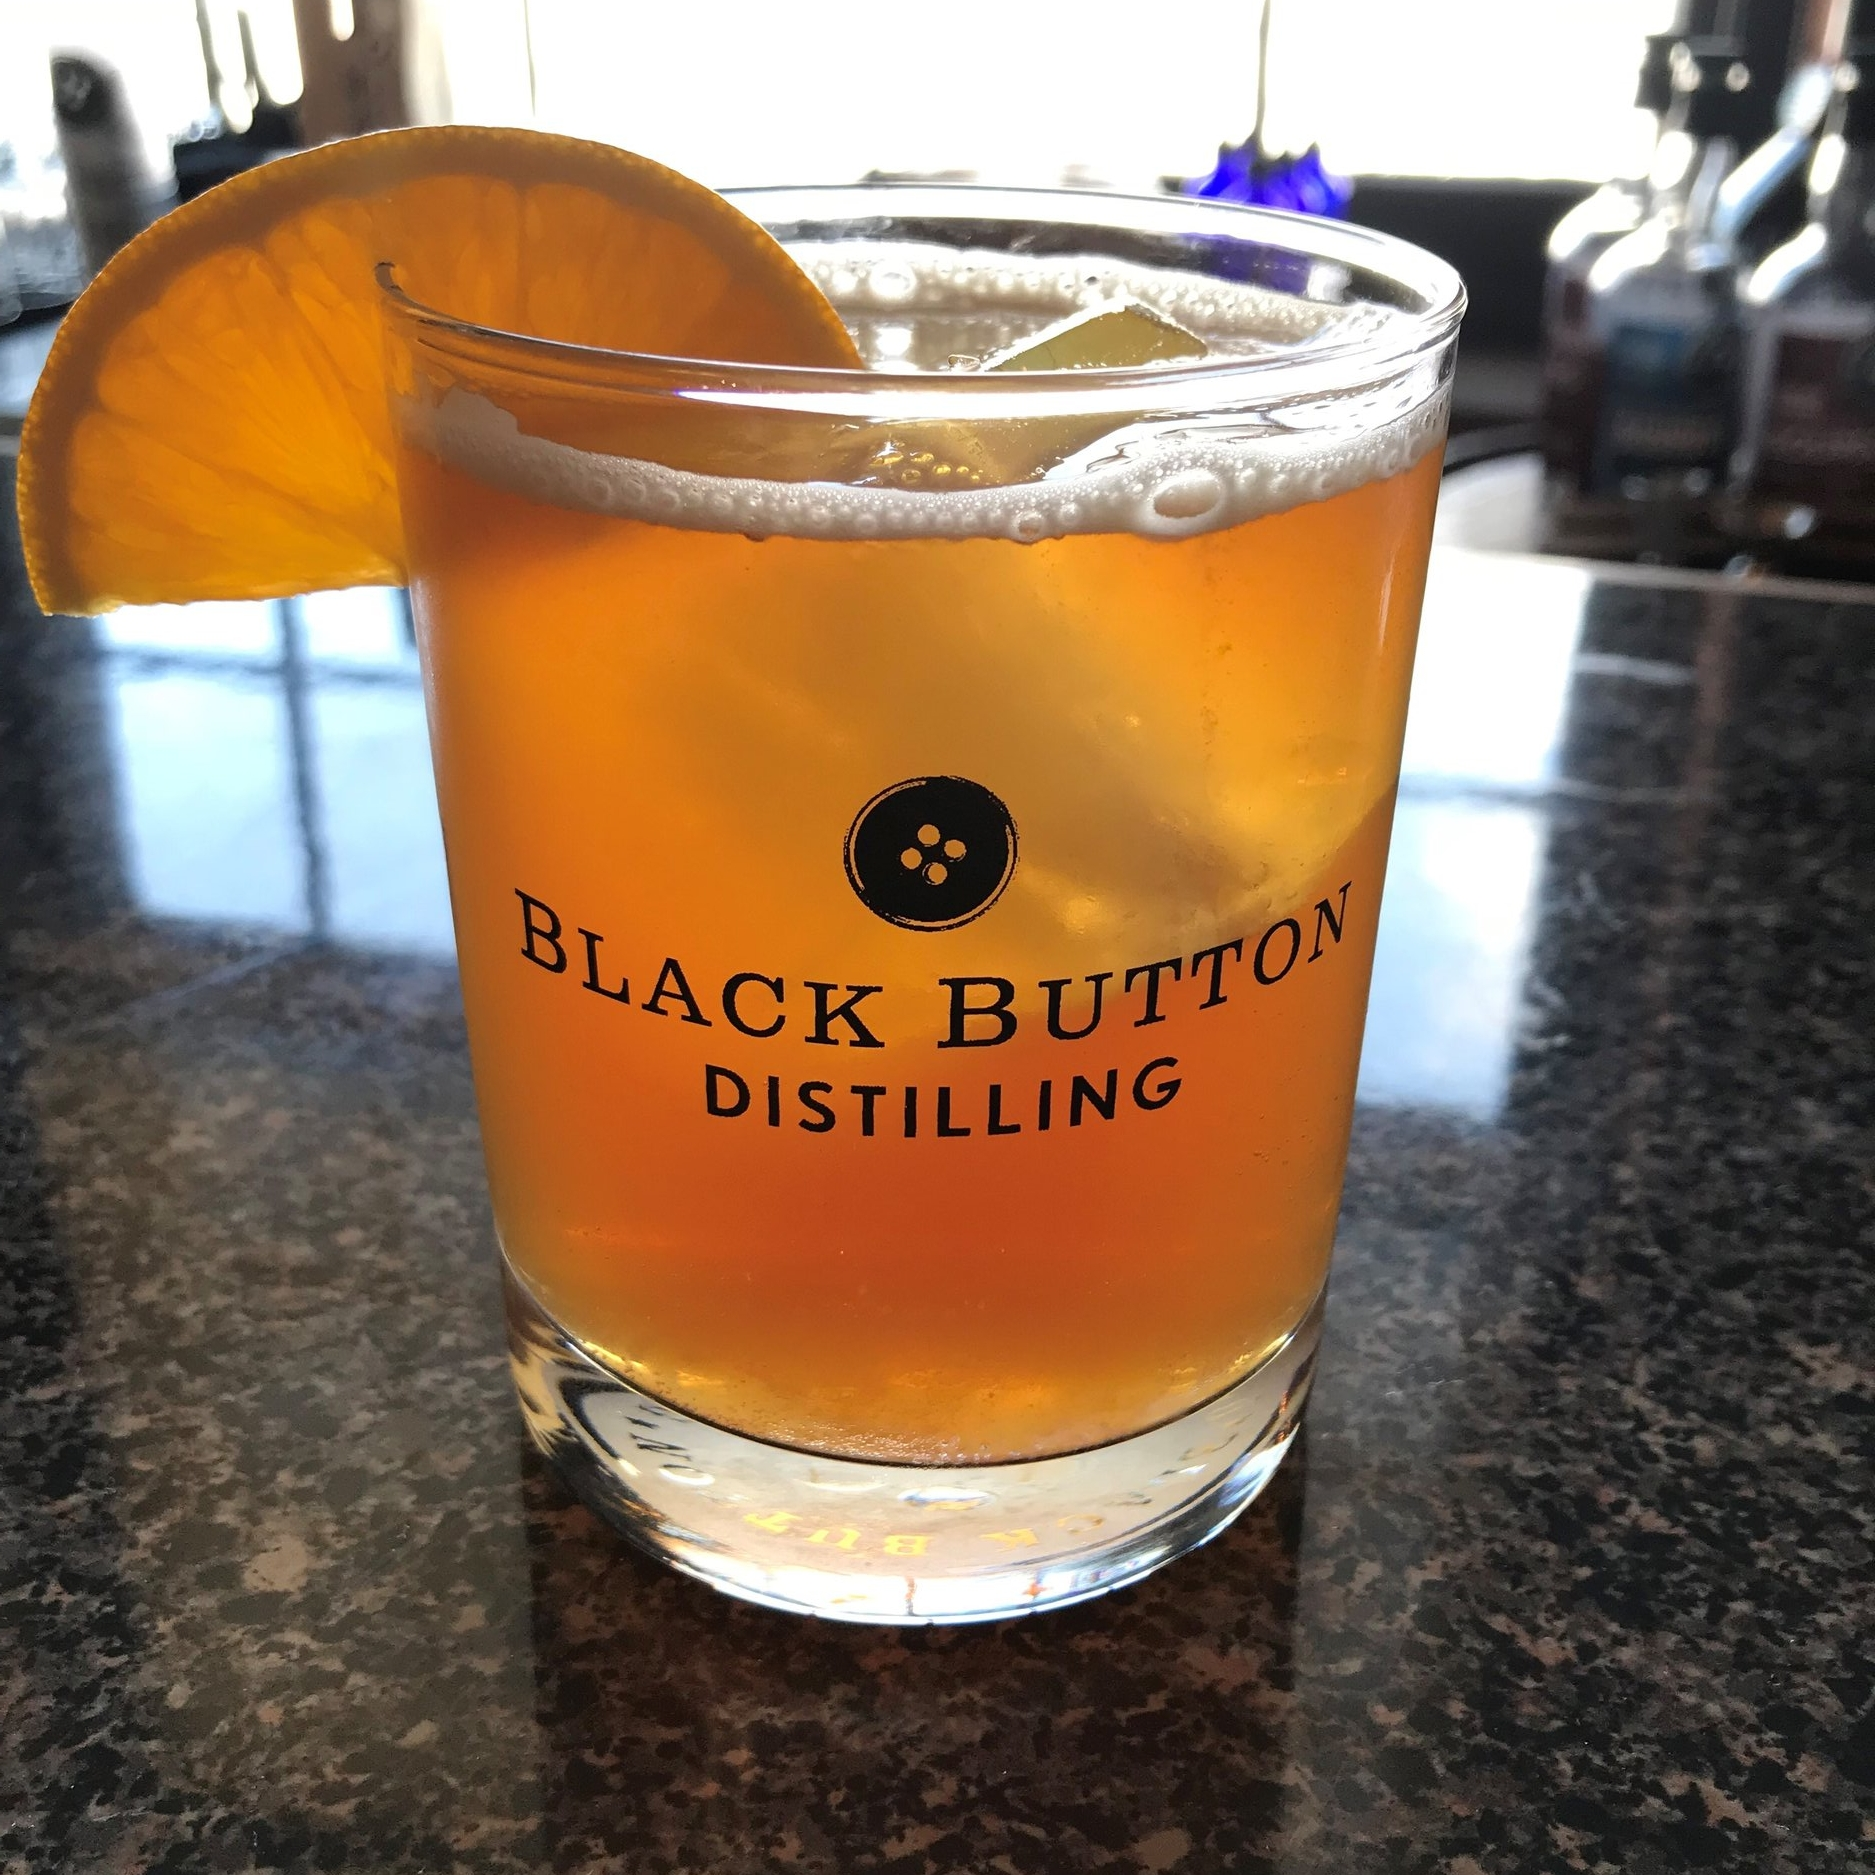 Black Button Distilling Lilac Gin Cocktail